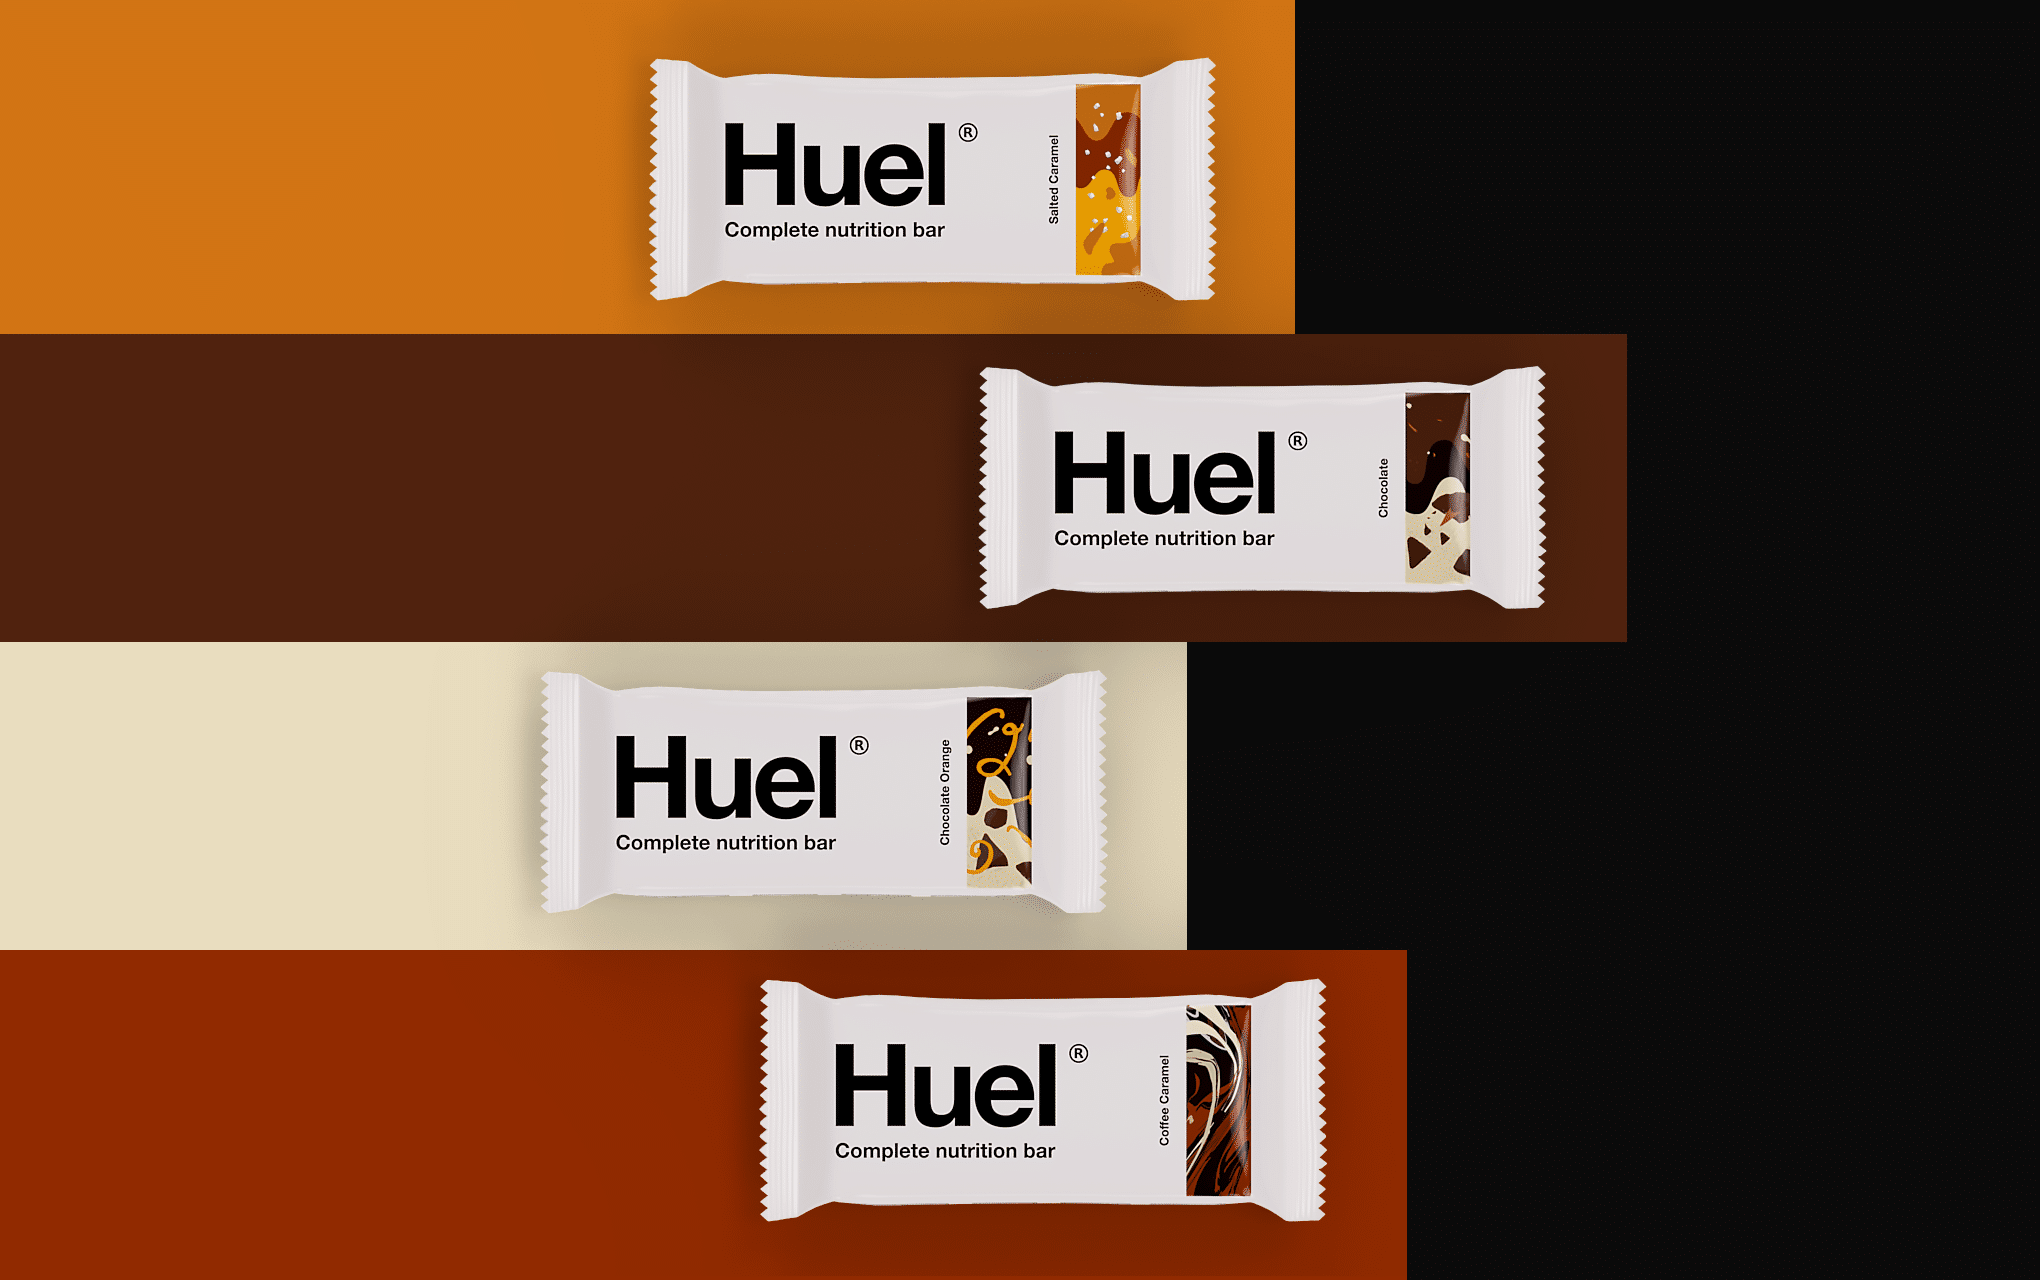 Huel Adds Three New Flavors to Snack Bar Range